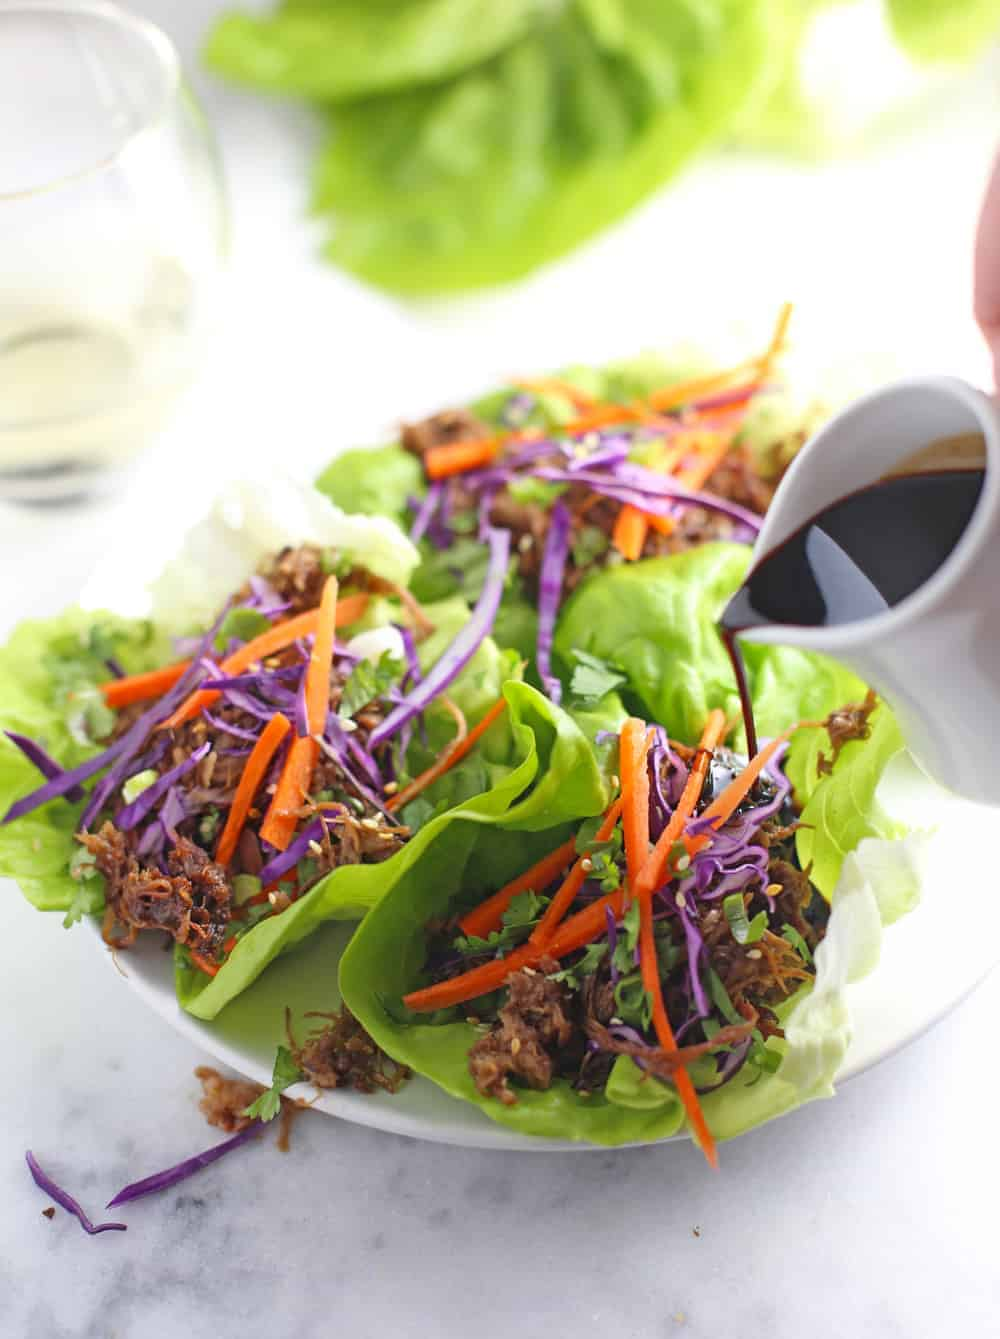 Asian Dipping Sauce poured over lettuce wraps